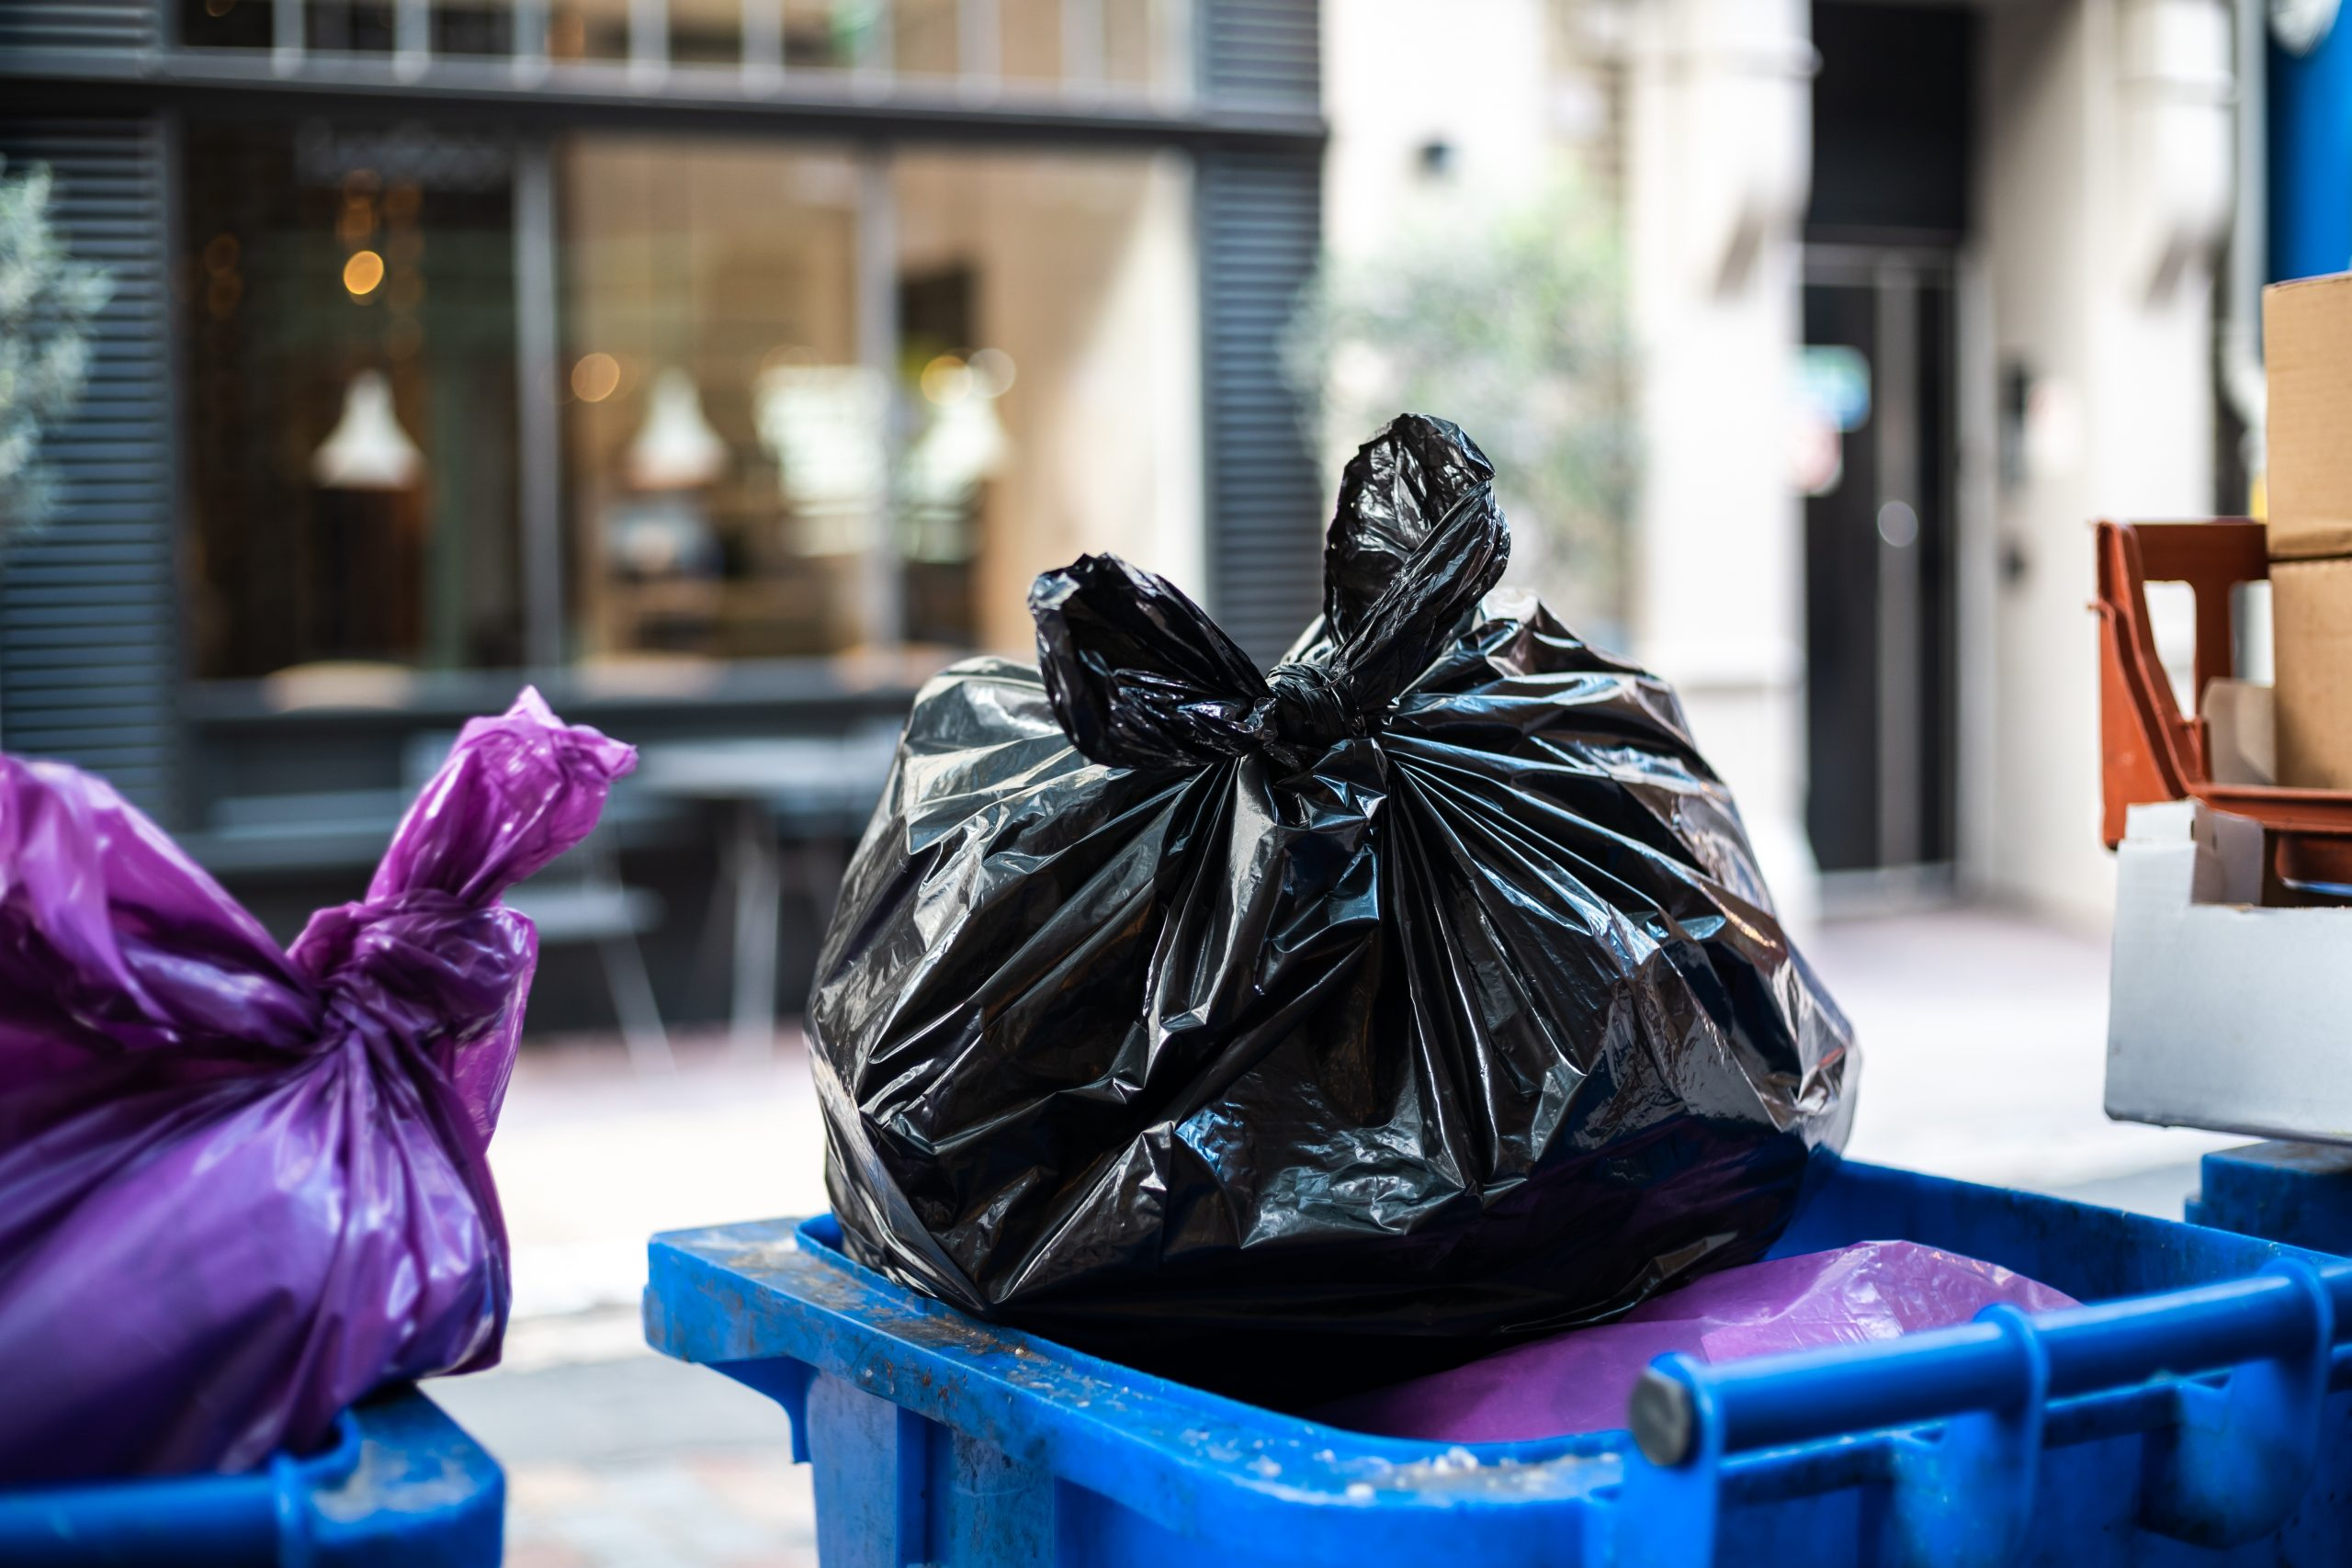 Purple and black bags of trash on a garbage bin during daytime